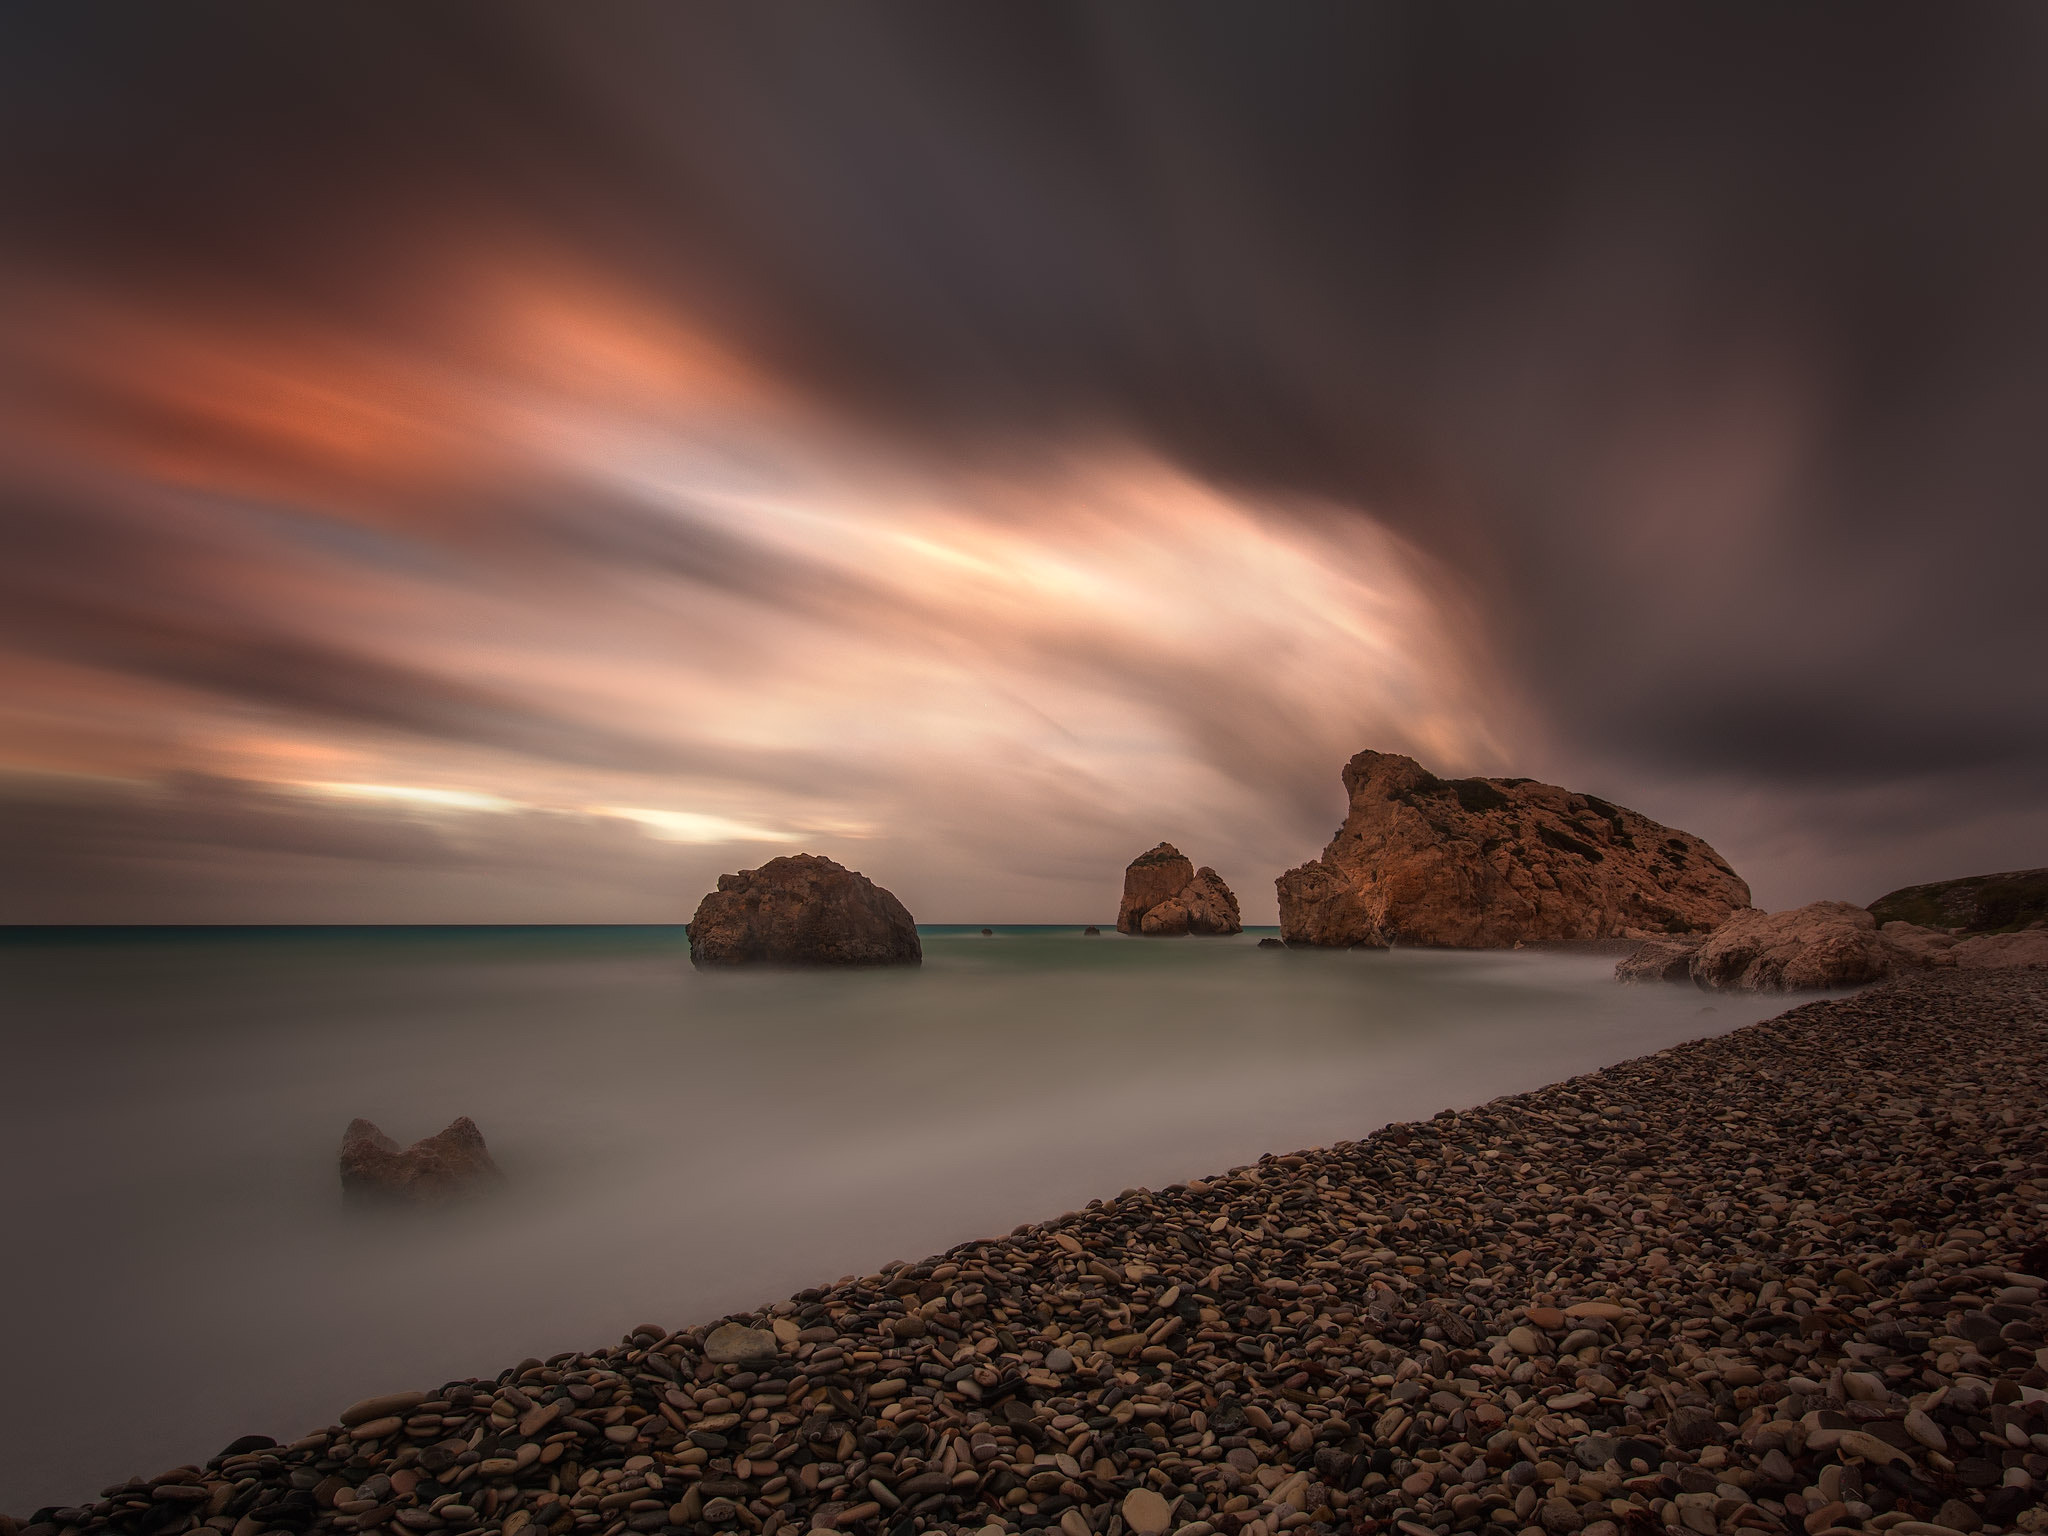 Photograph Aphrodite's Storm by Tomasz Huczek on 500px